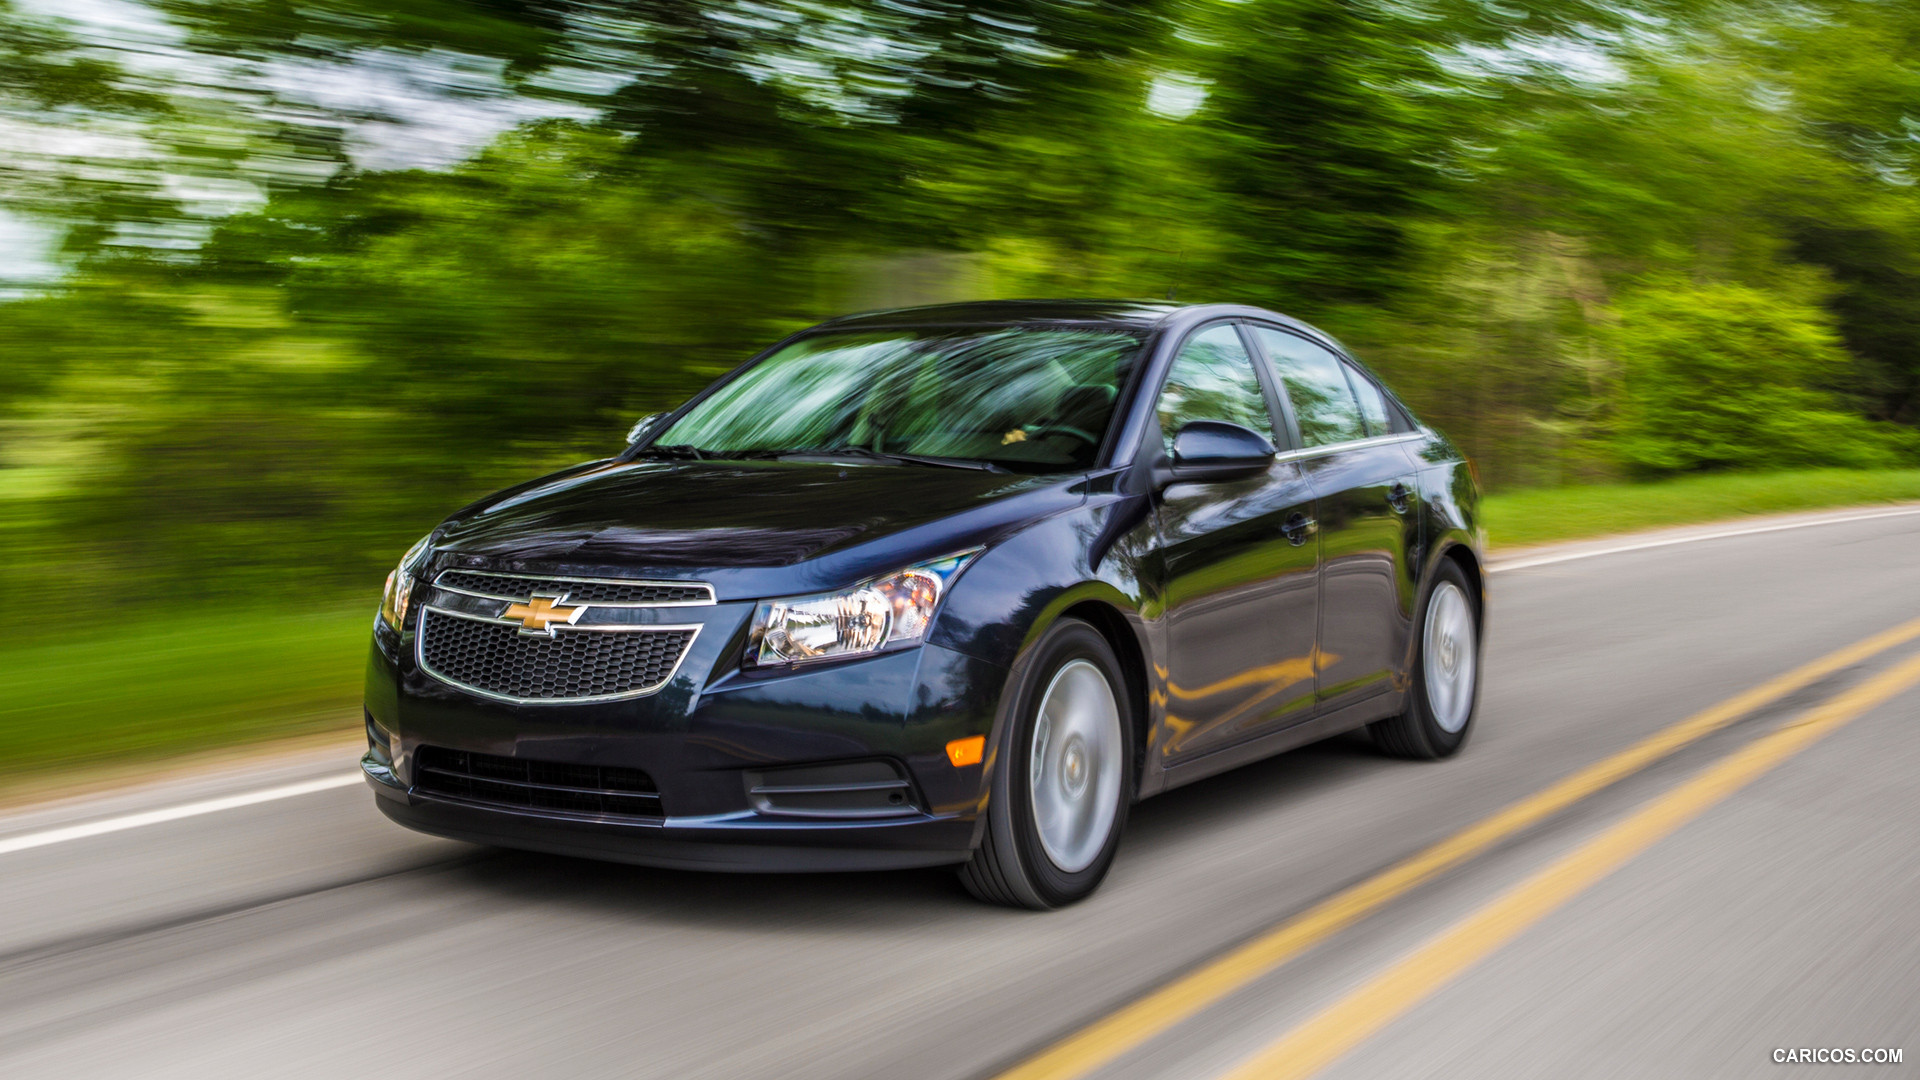 Chevrolet Cruze Wallpapers posted by Ethan Simpson